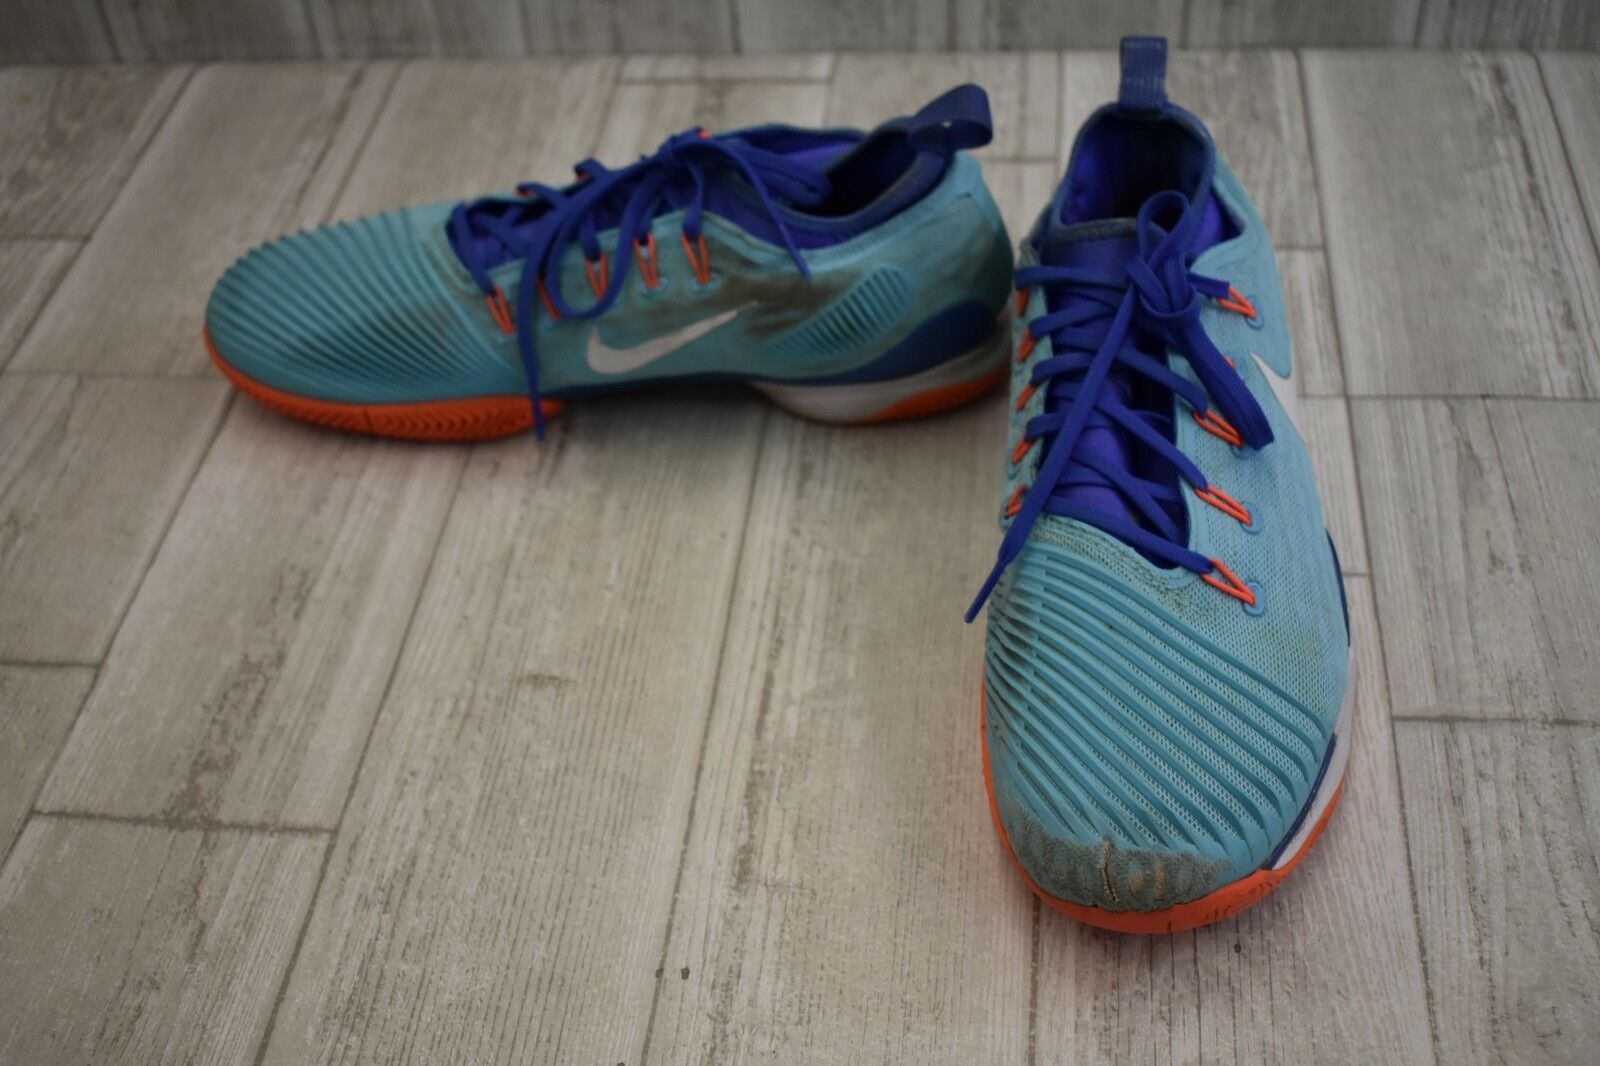 Nike Air Zoom Ultra React Running Shoes, Men's Size 10, Blue/Orange DAMAGED